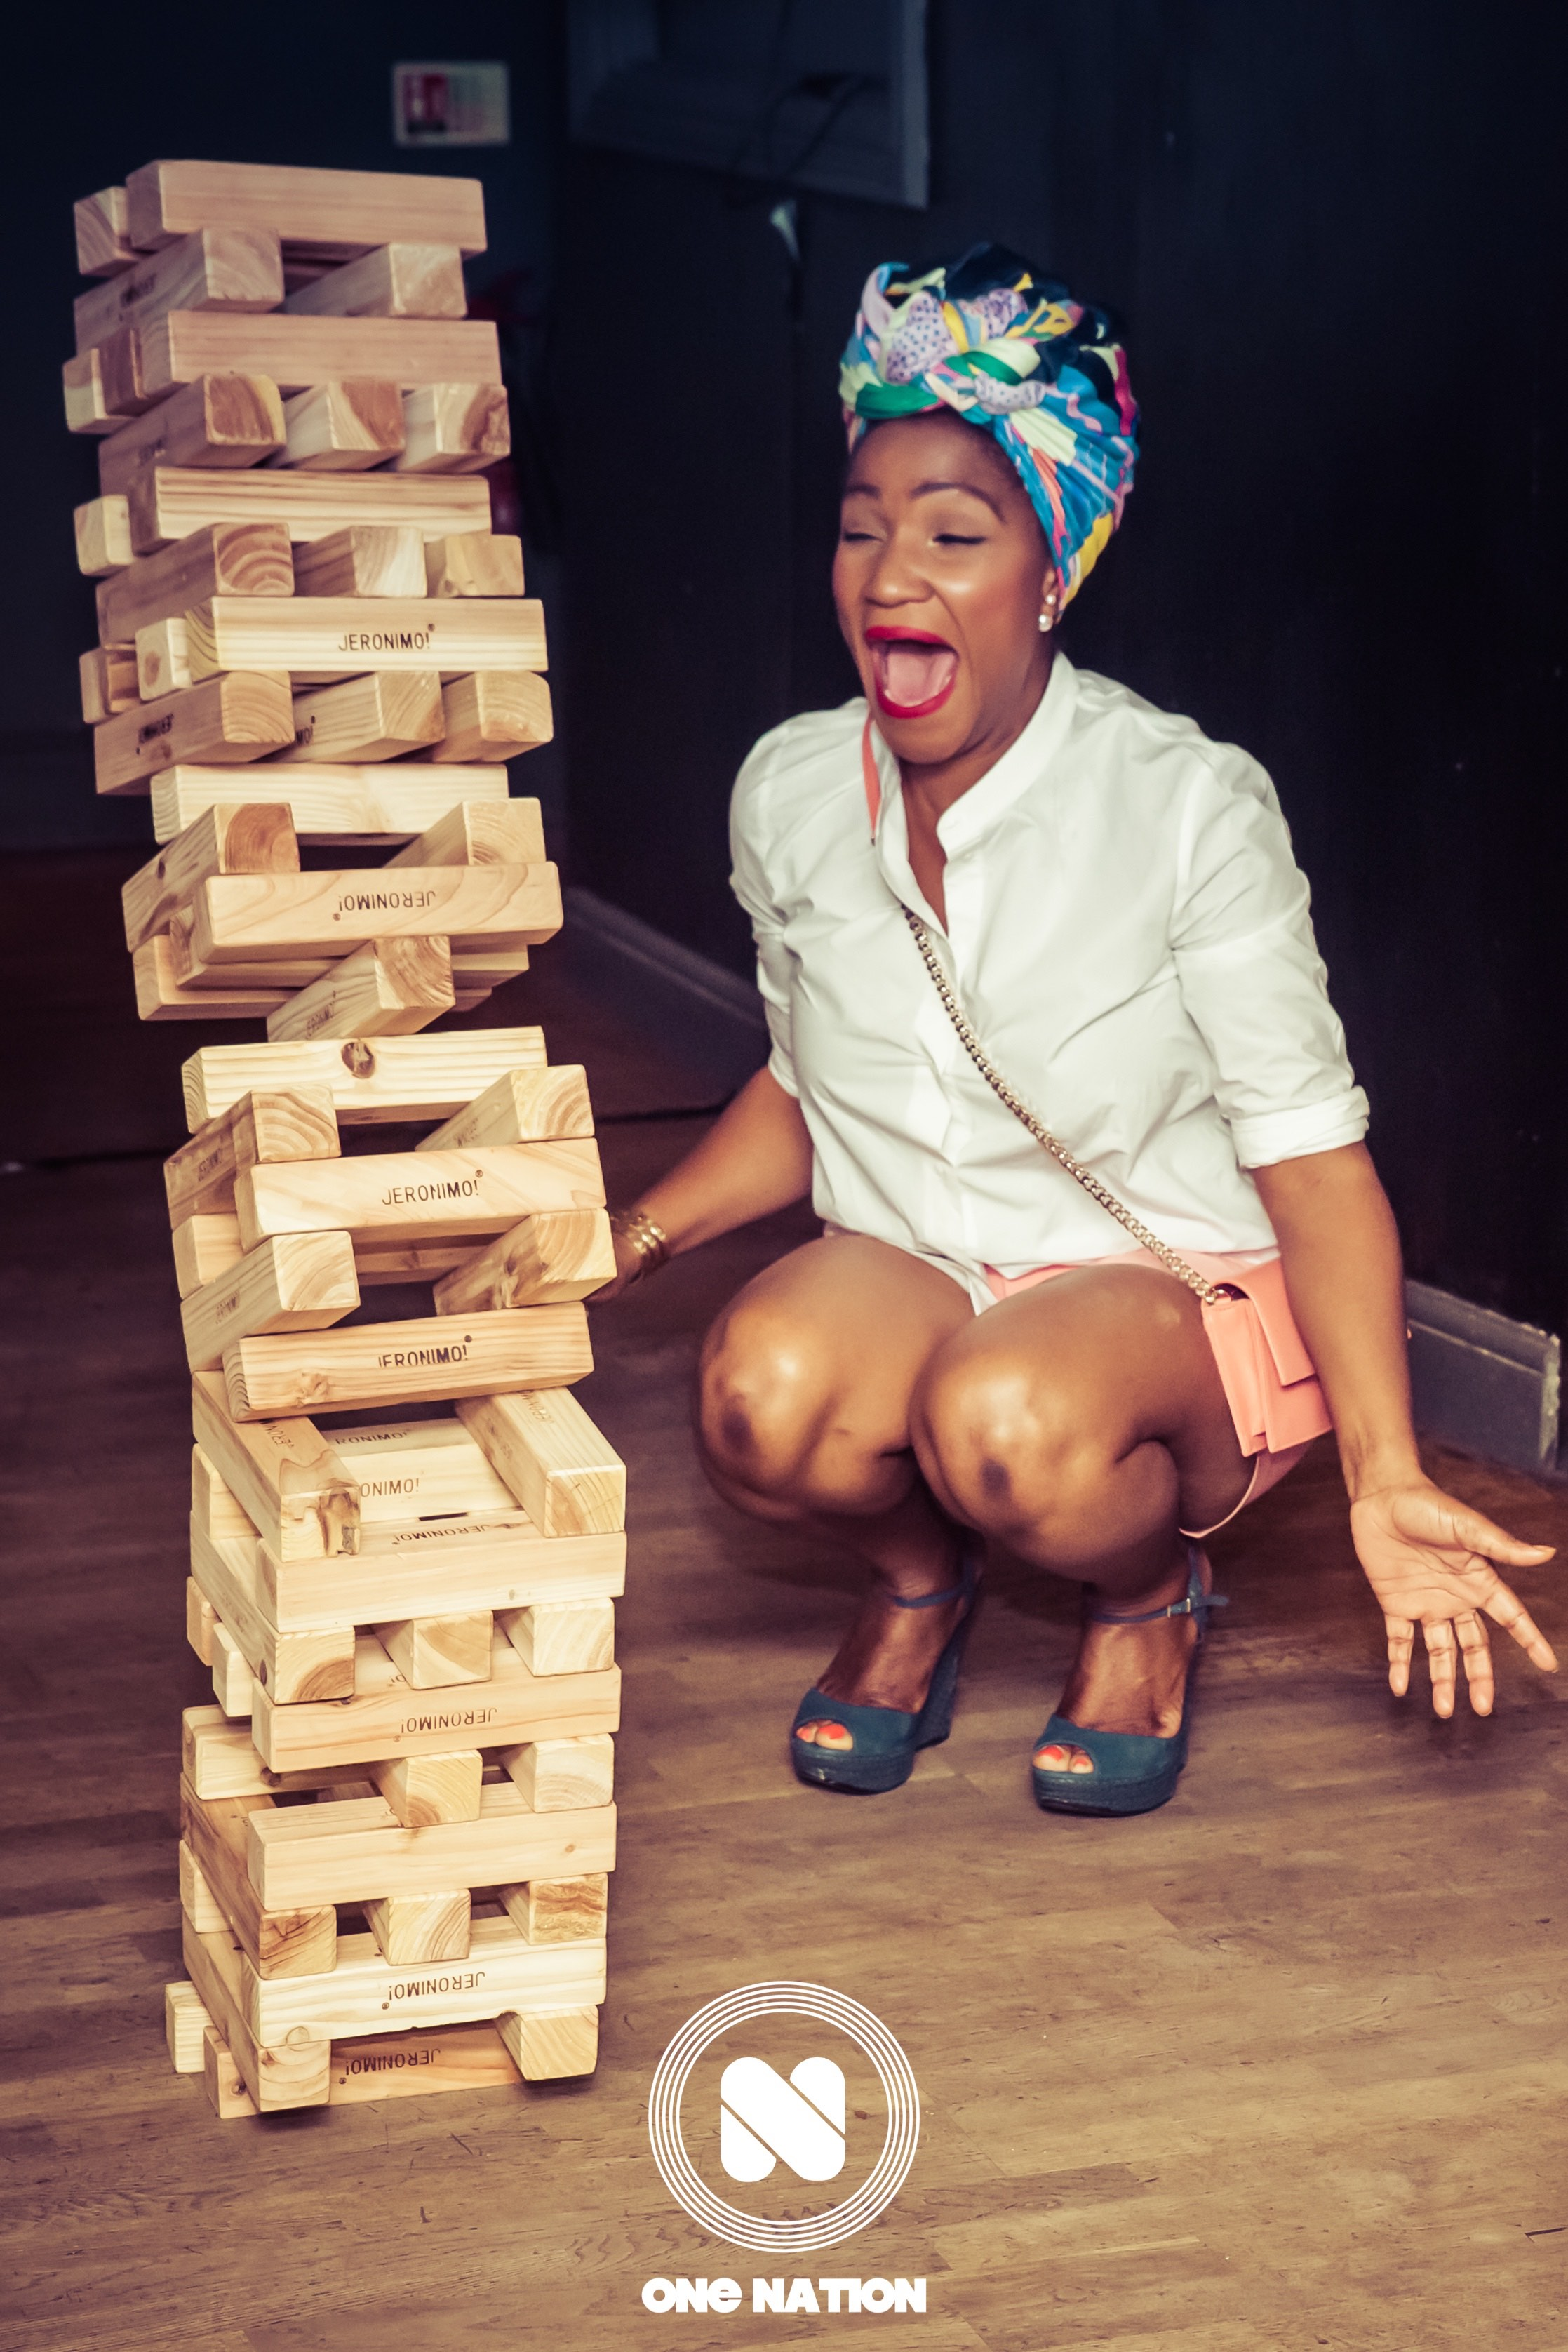 Giant Jenga falling at One Nation.  Remember the rule; if you make it fall, you help build it back up.